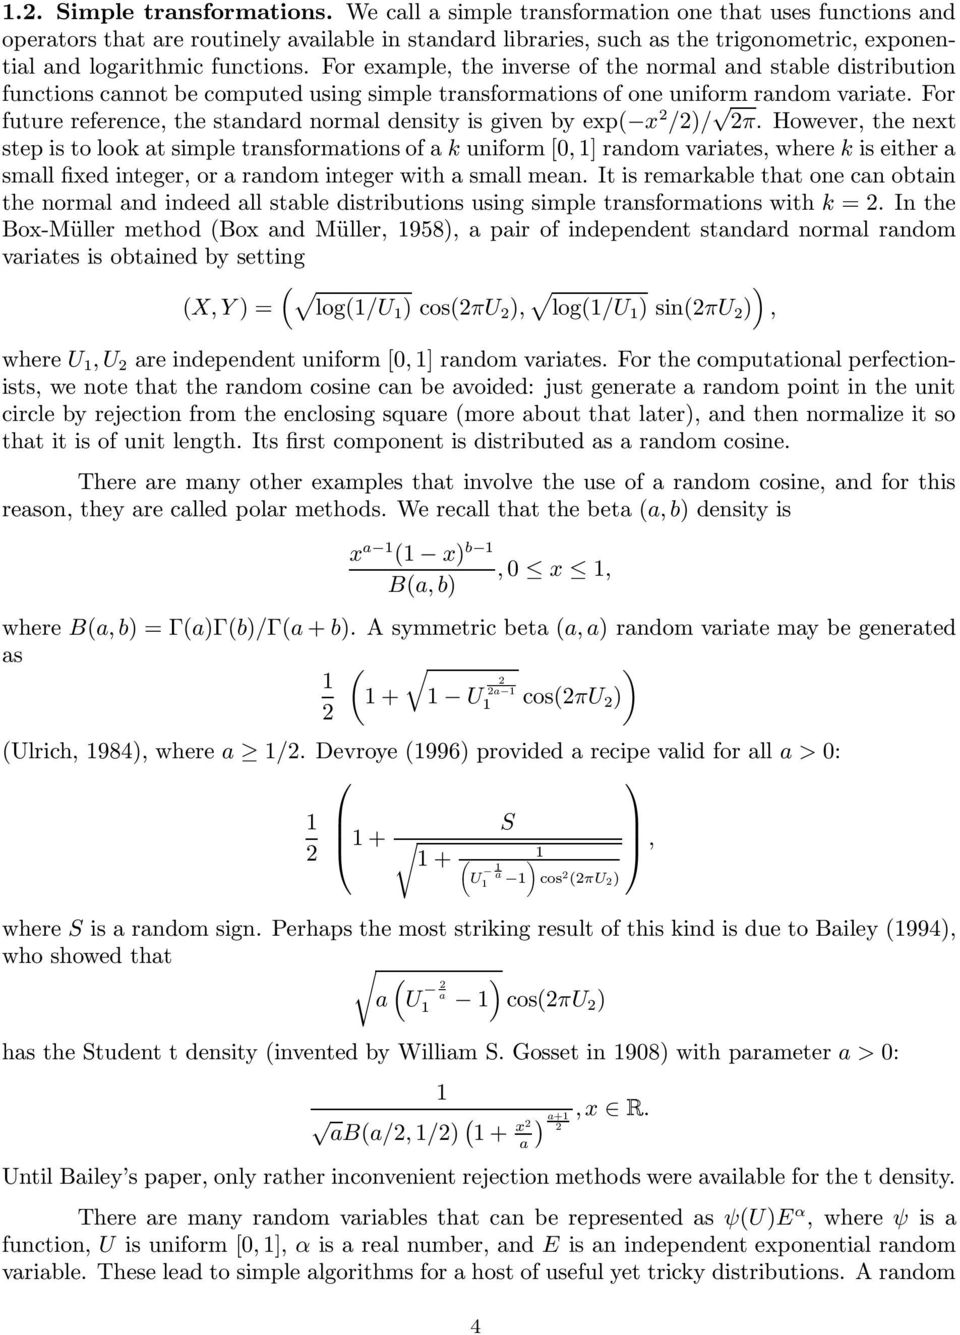 For example, the inverse of the normal and stable distribution functions cannot be computed using simple transformations of one uniform random variate.